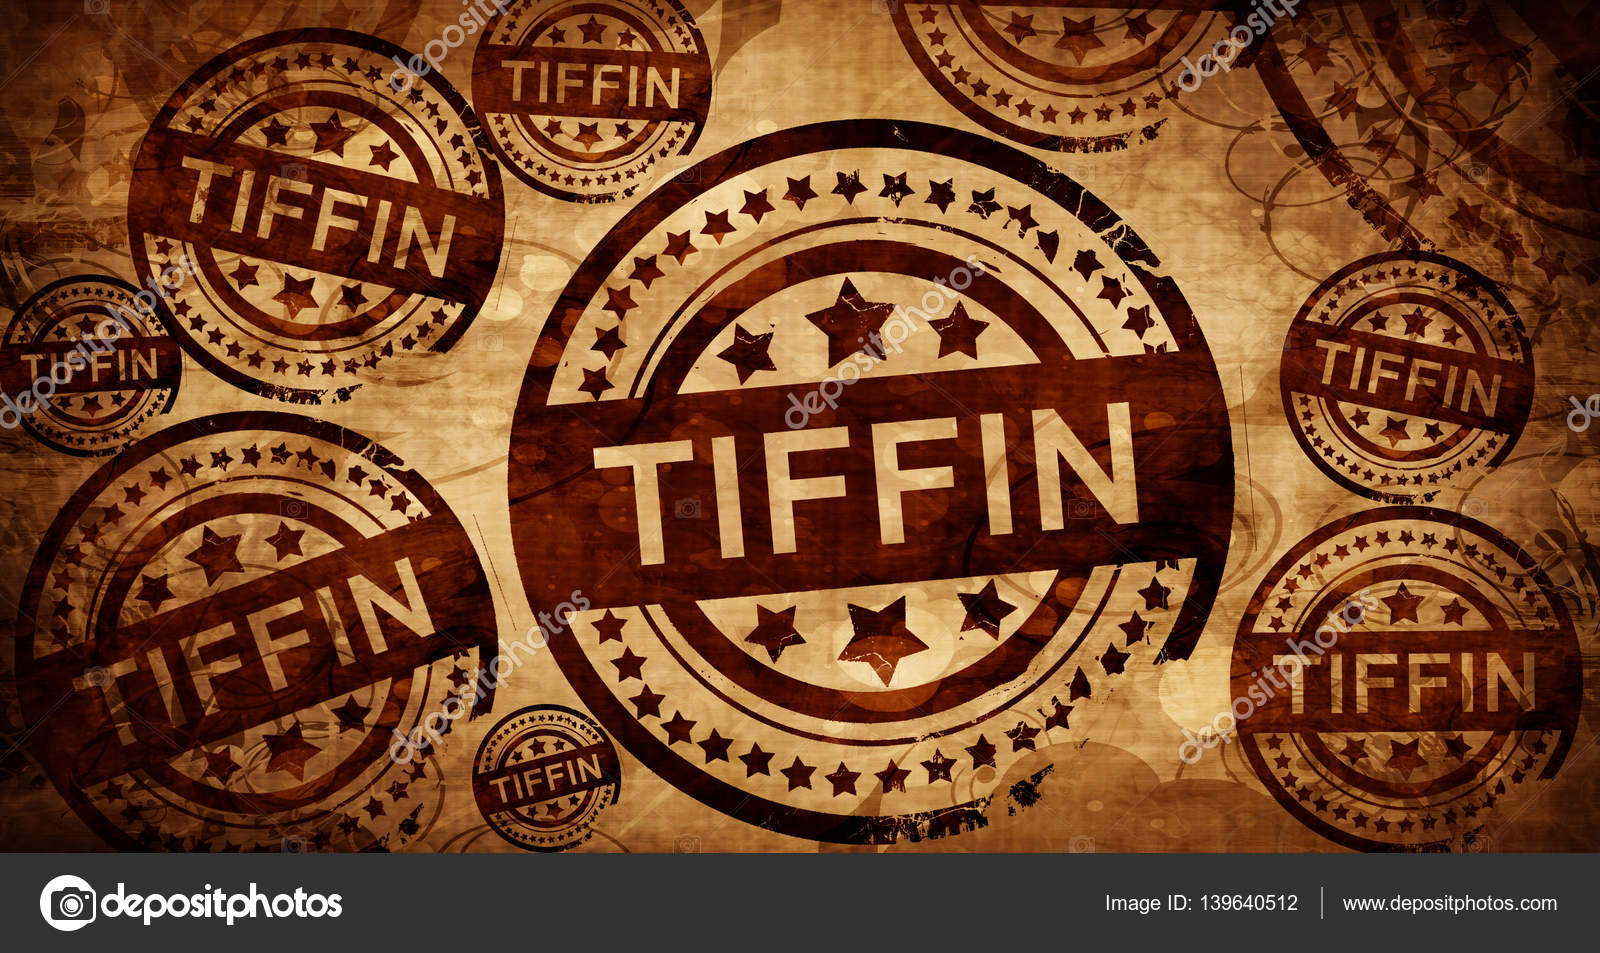 tiffin online dating Luvfreecom is a 100% free online dating and personal ads site there are a lot of tiffin singles searching romance, friendship, fun and more dates join our tiffin dating site, view free personal ads of single people and talk with them in chat rooms in a real time.